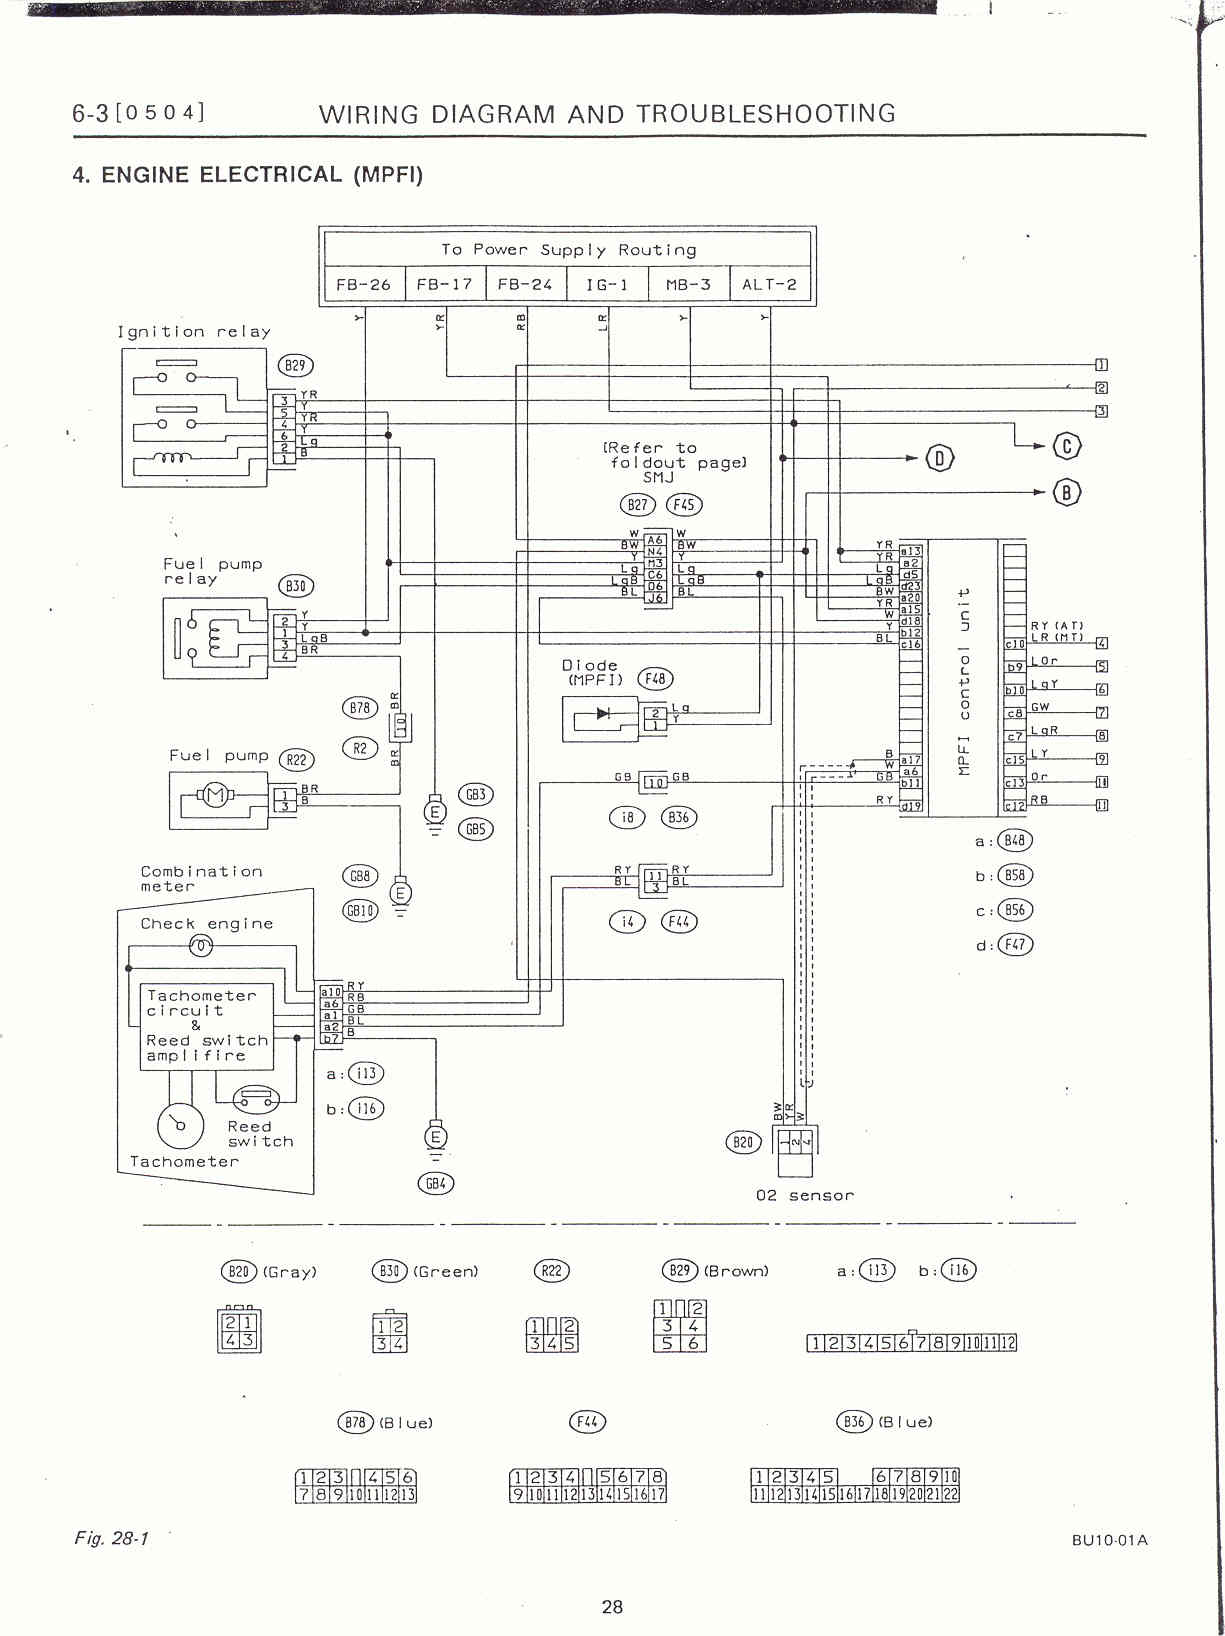 subaru wiring diagram wiring diagrams 6 3 engine electrical1 subaru wiring diagram 6 3 engine electrical1